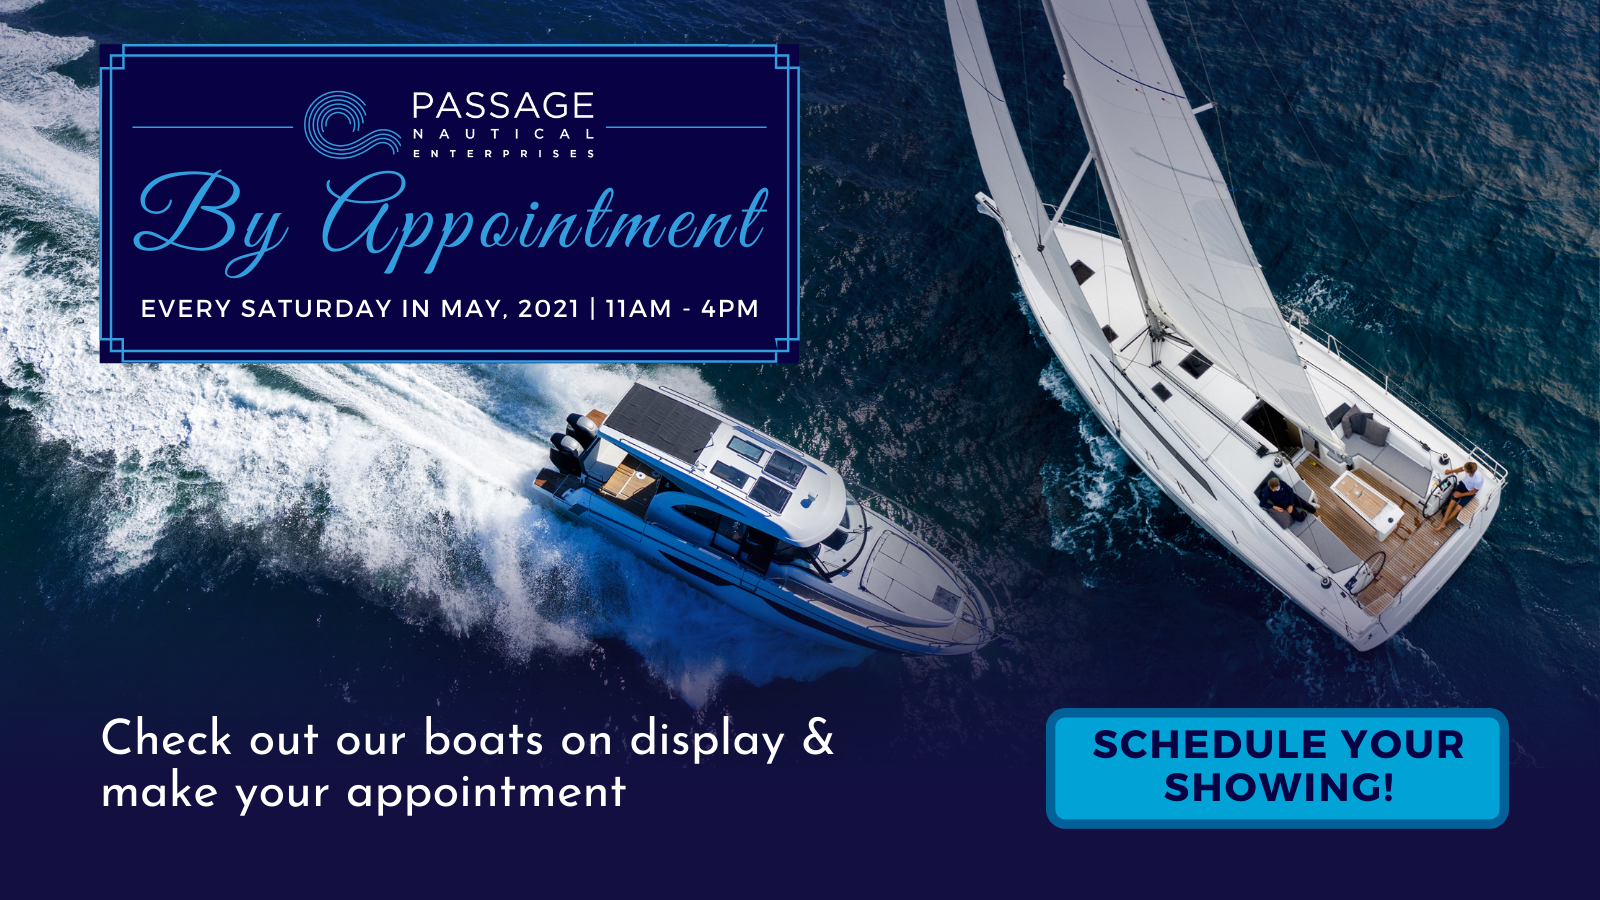 Passage Nautical 'By Appointment' event